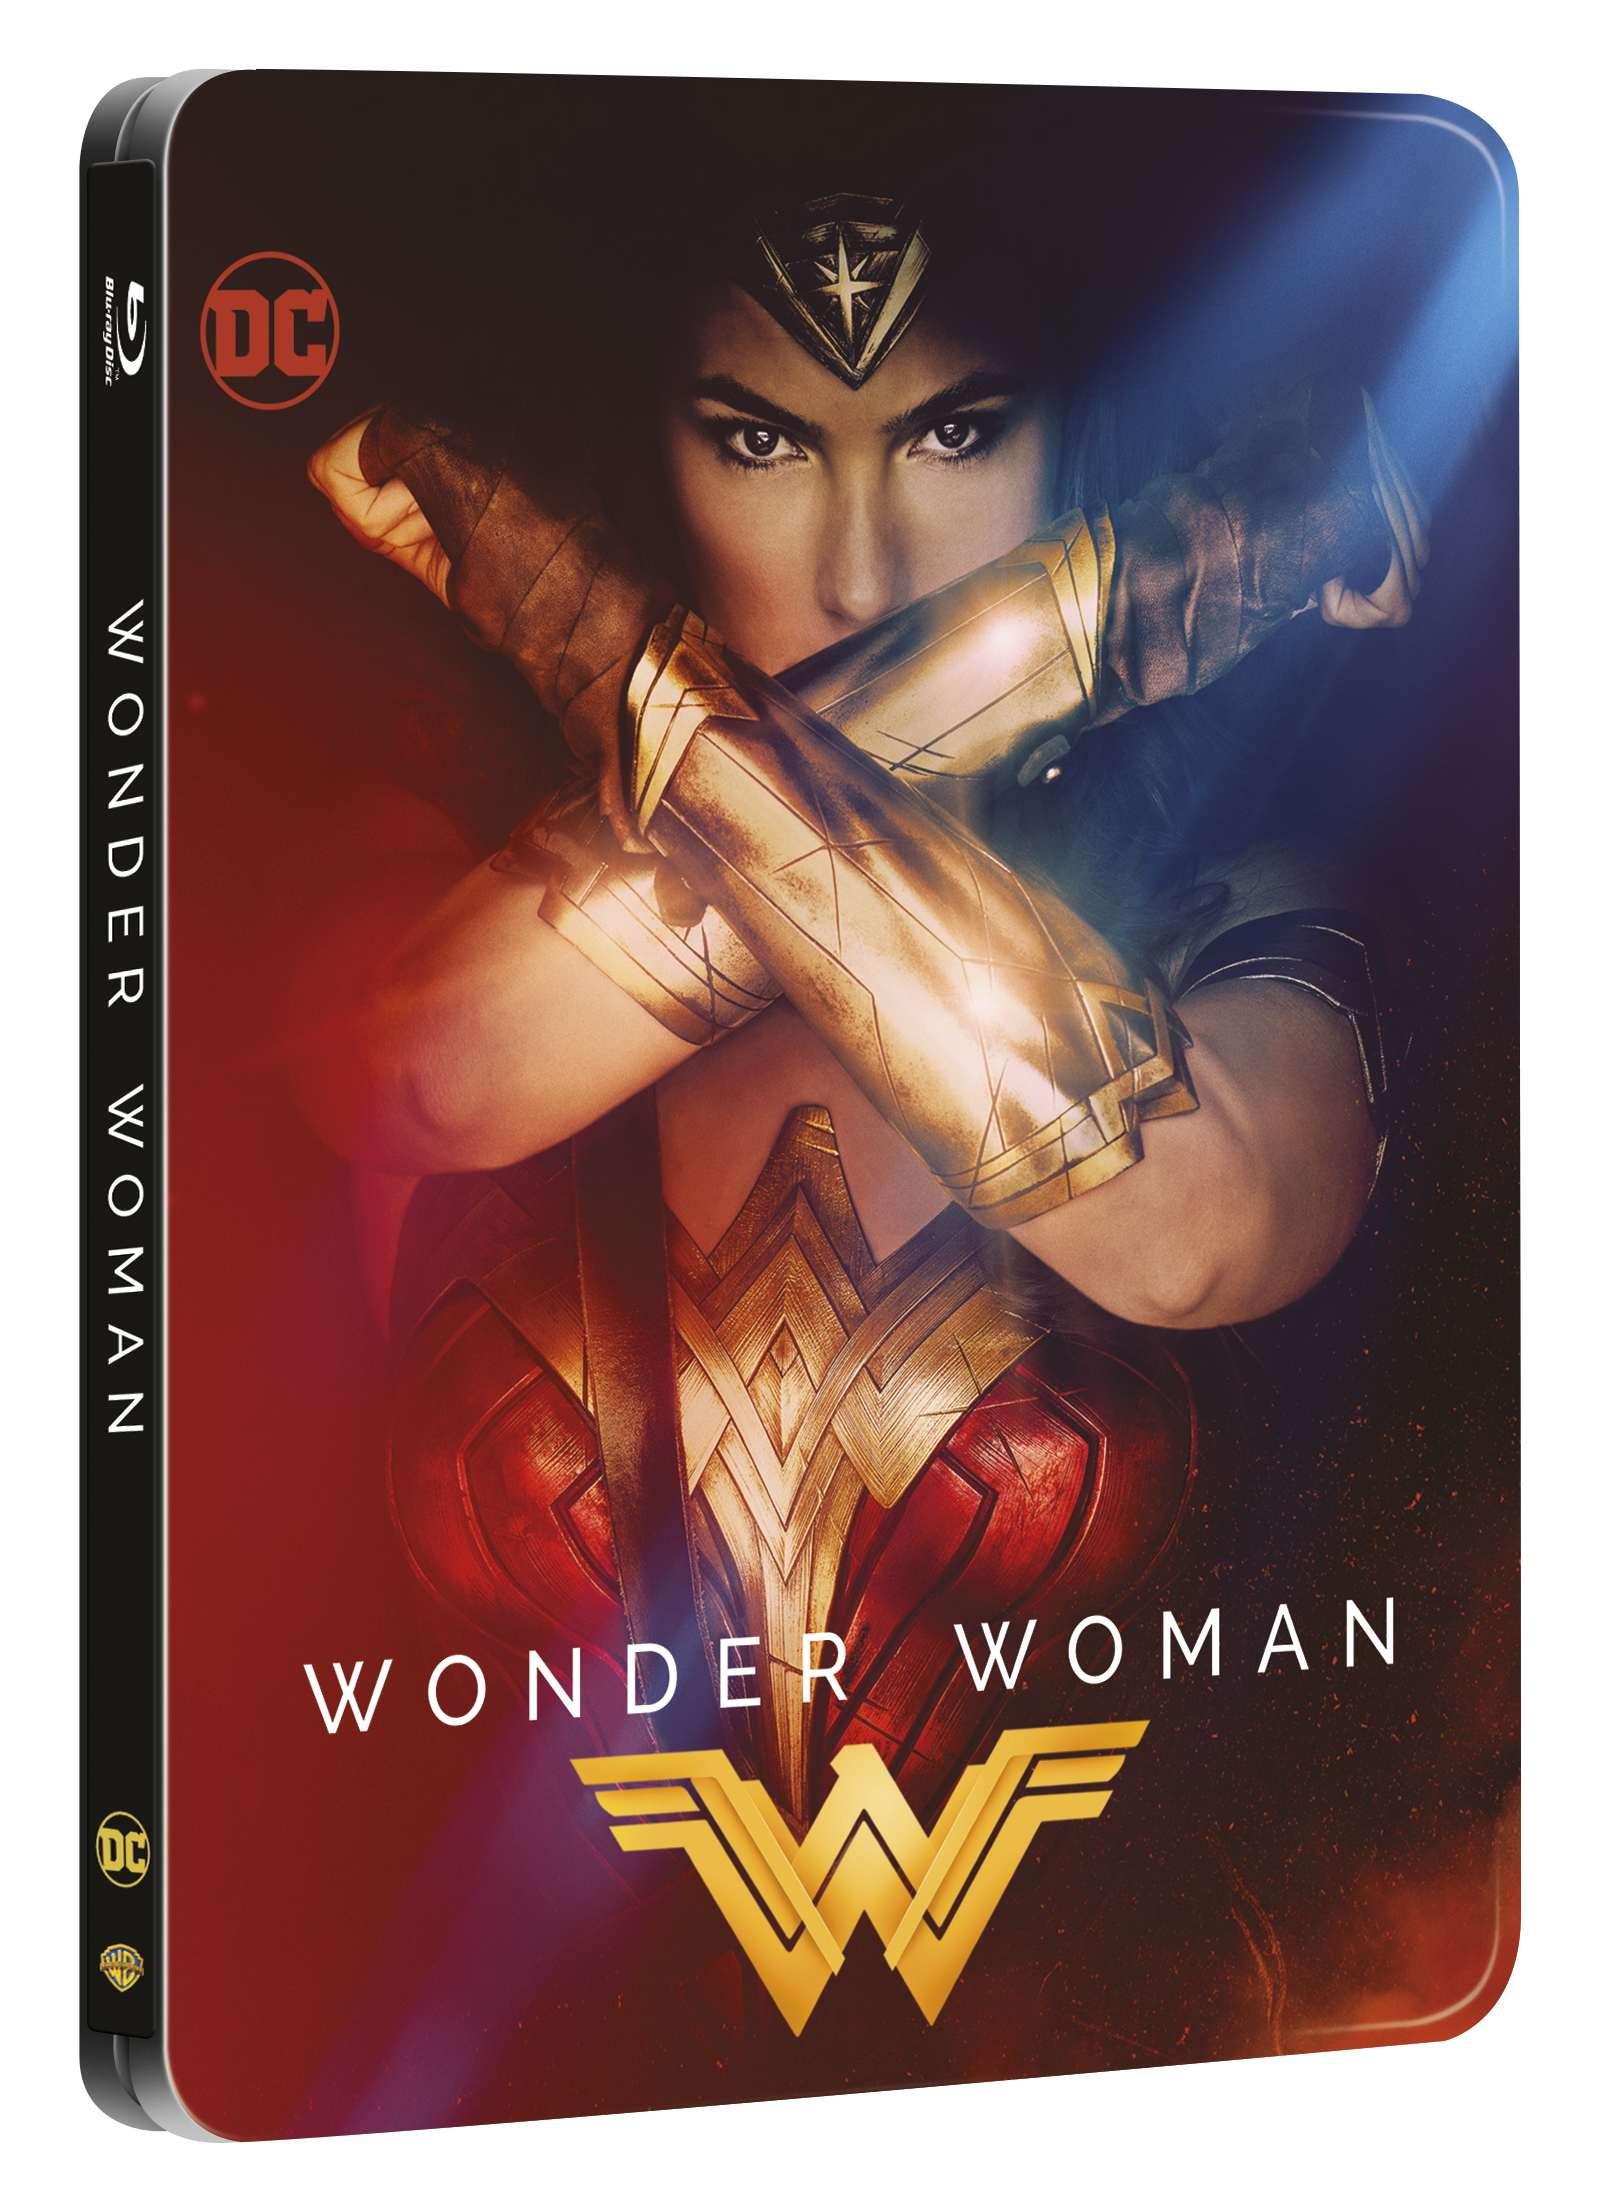 WONDER WOMAN - Blu-ray 3D + 2D STEELBOOK (2 BD)